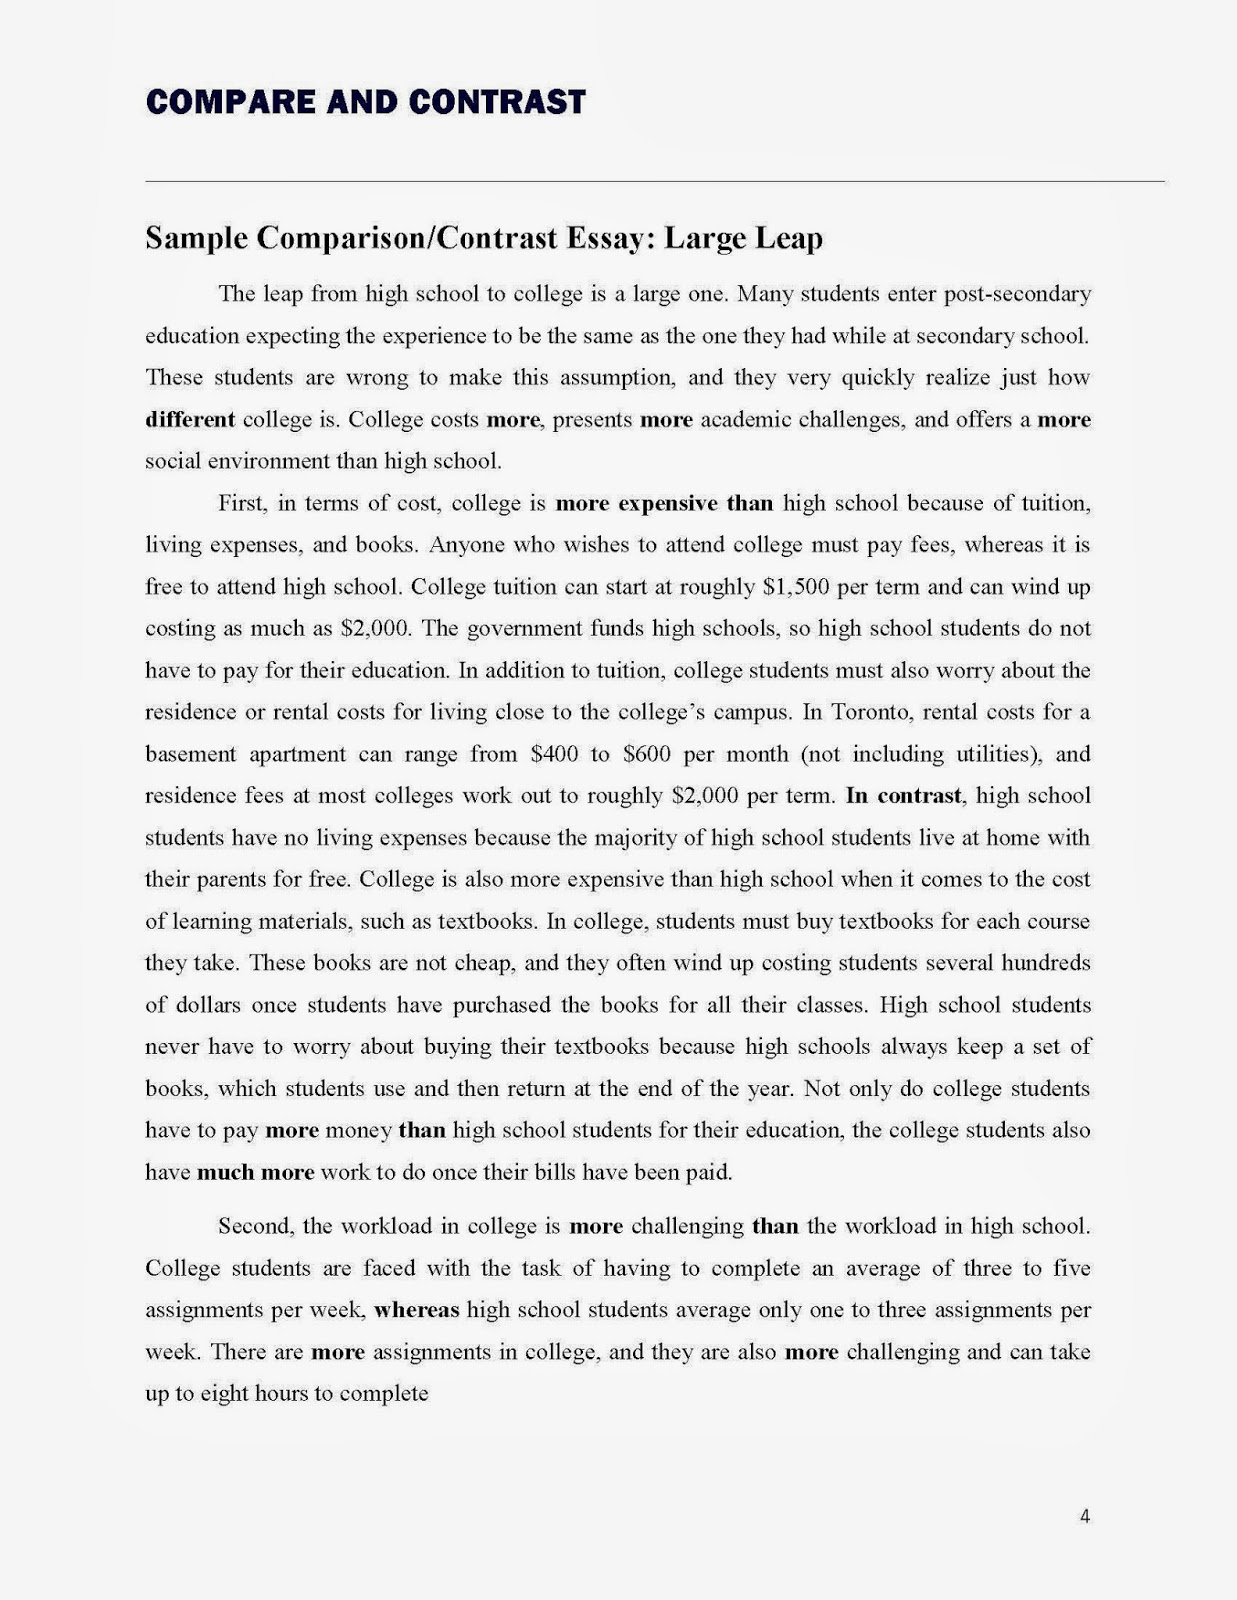 014 Compare2band2bcontrast2bessay Page 4 Essay Example Ucf Prompt Archaicawful 2017 Full